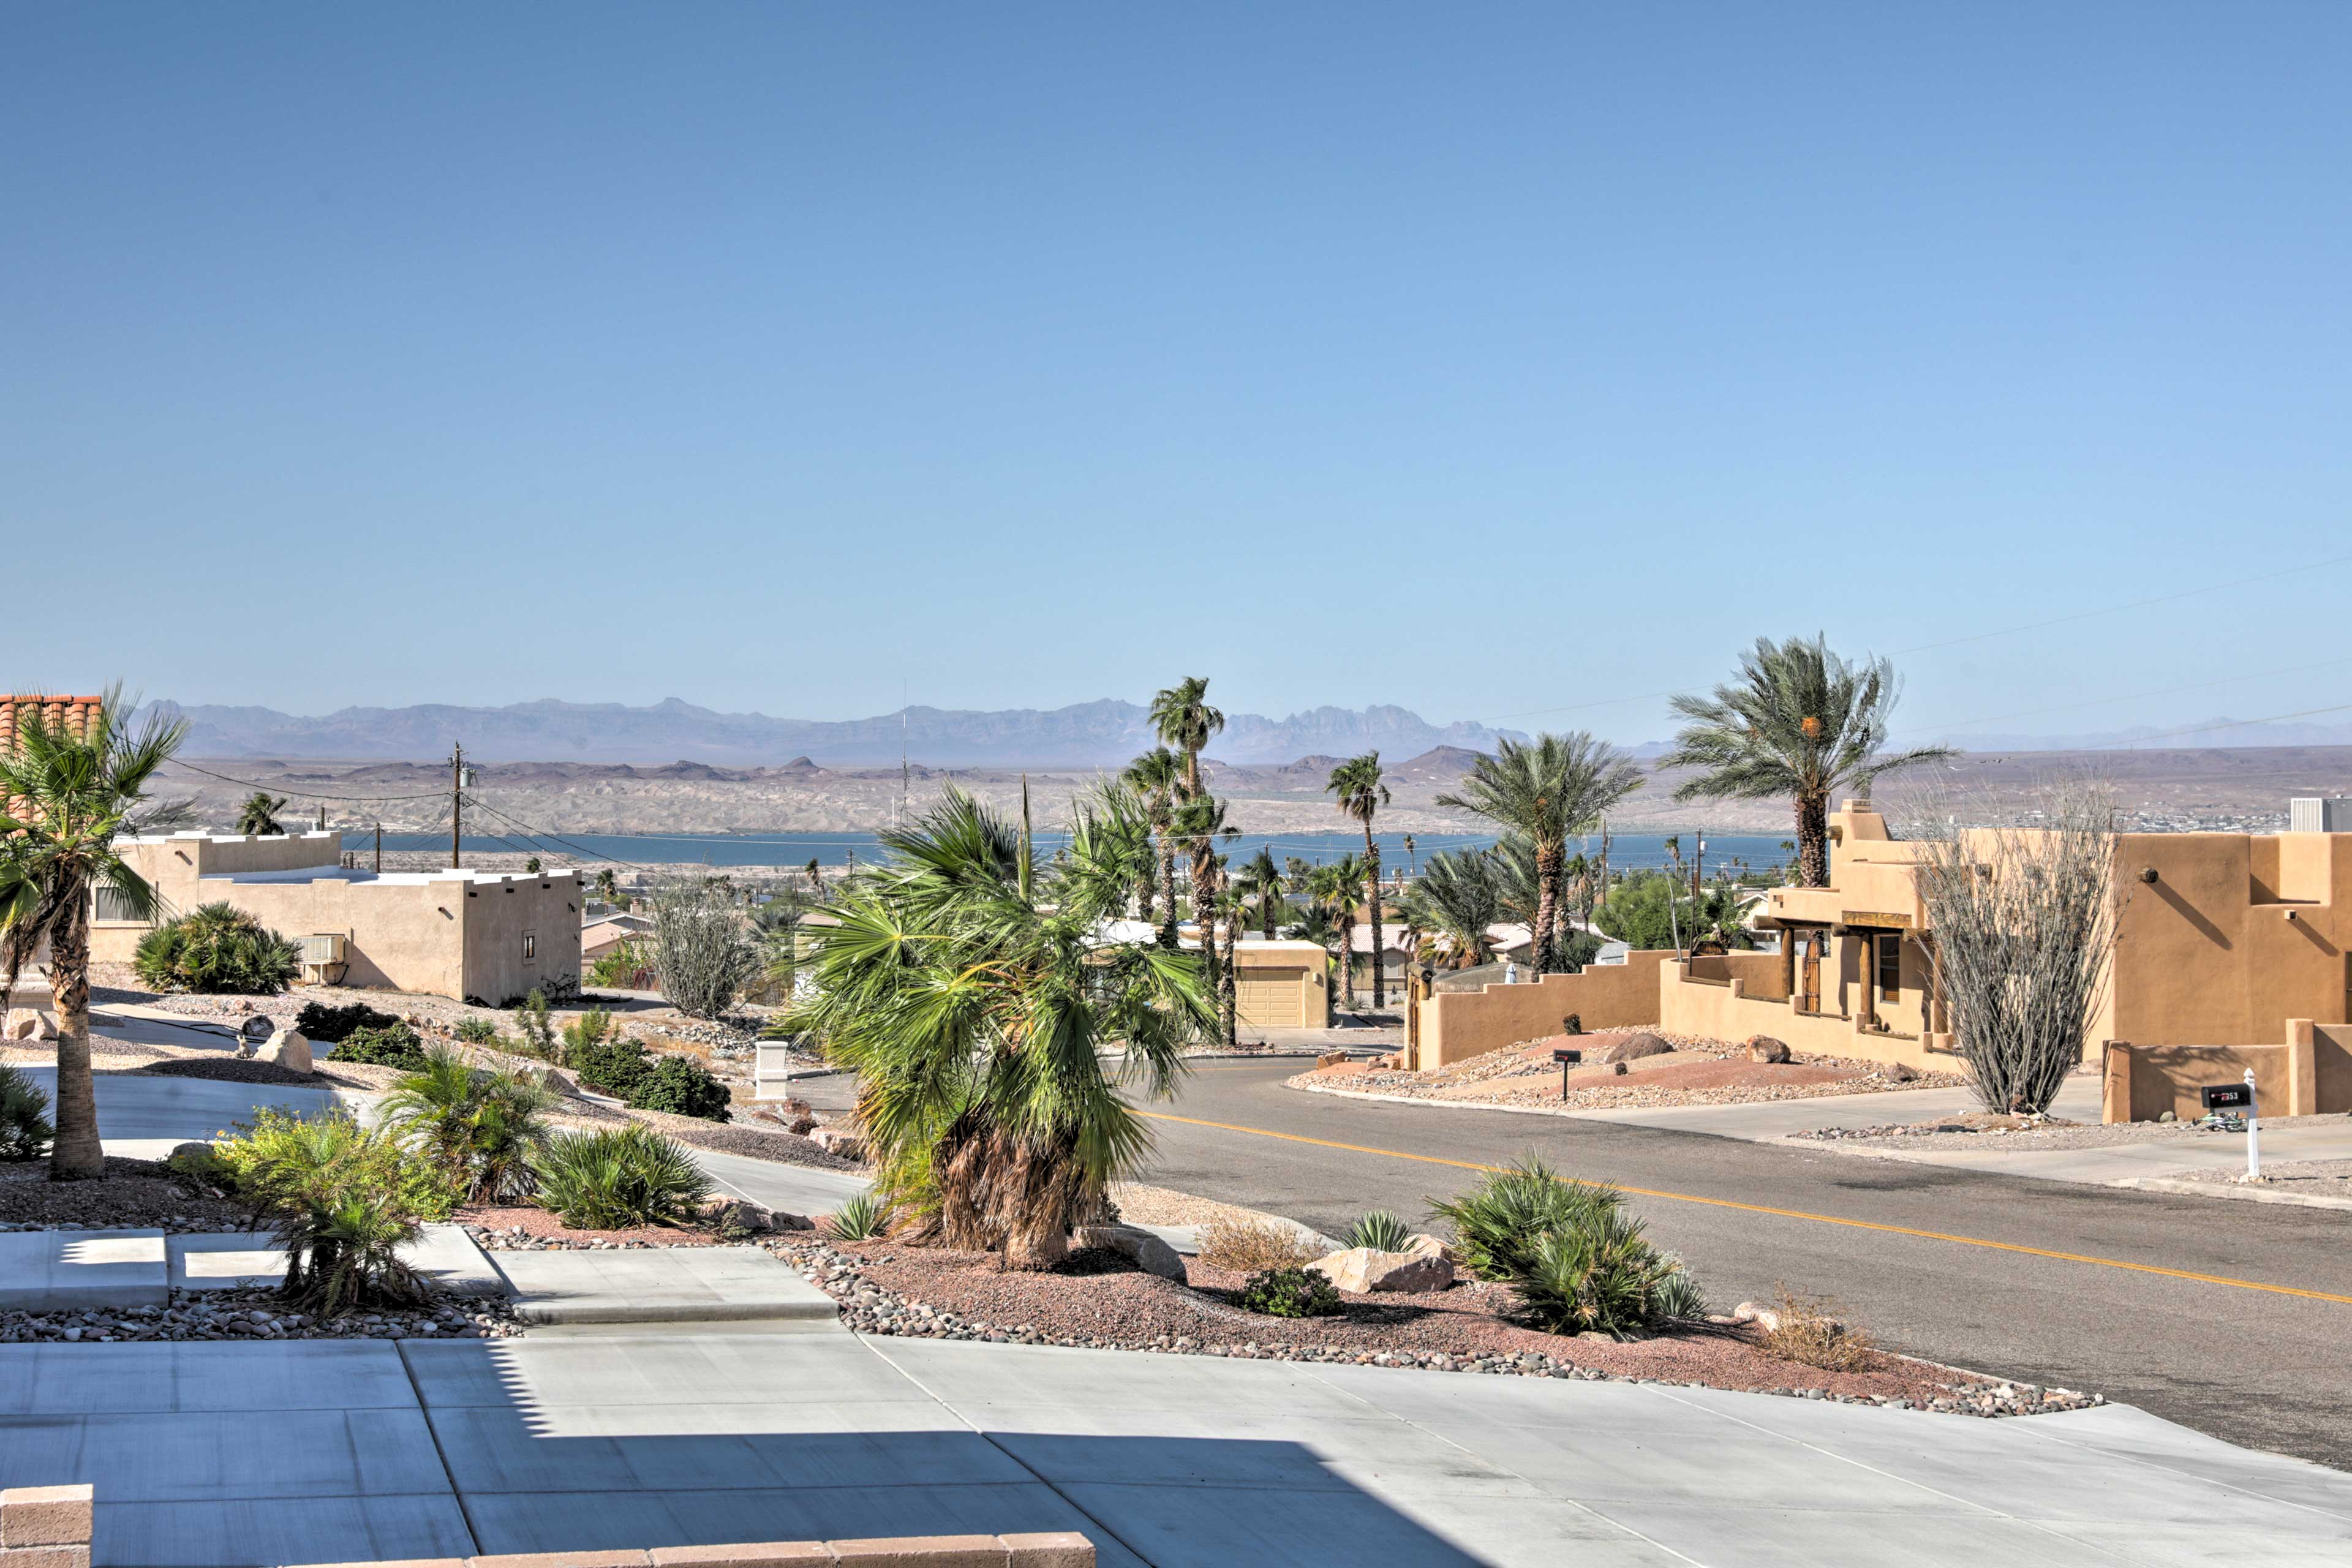 Soak in views of the lake and mountains!